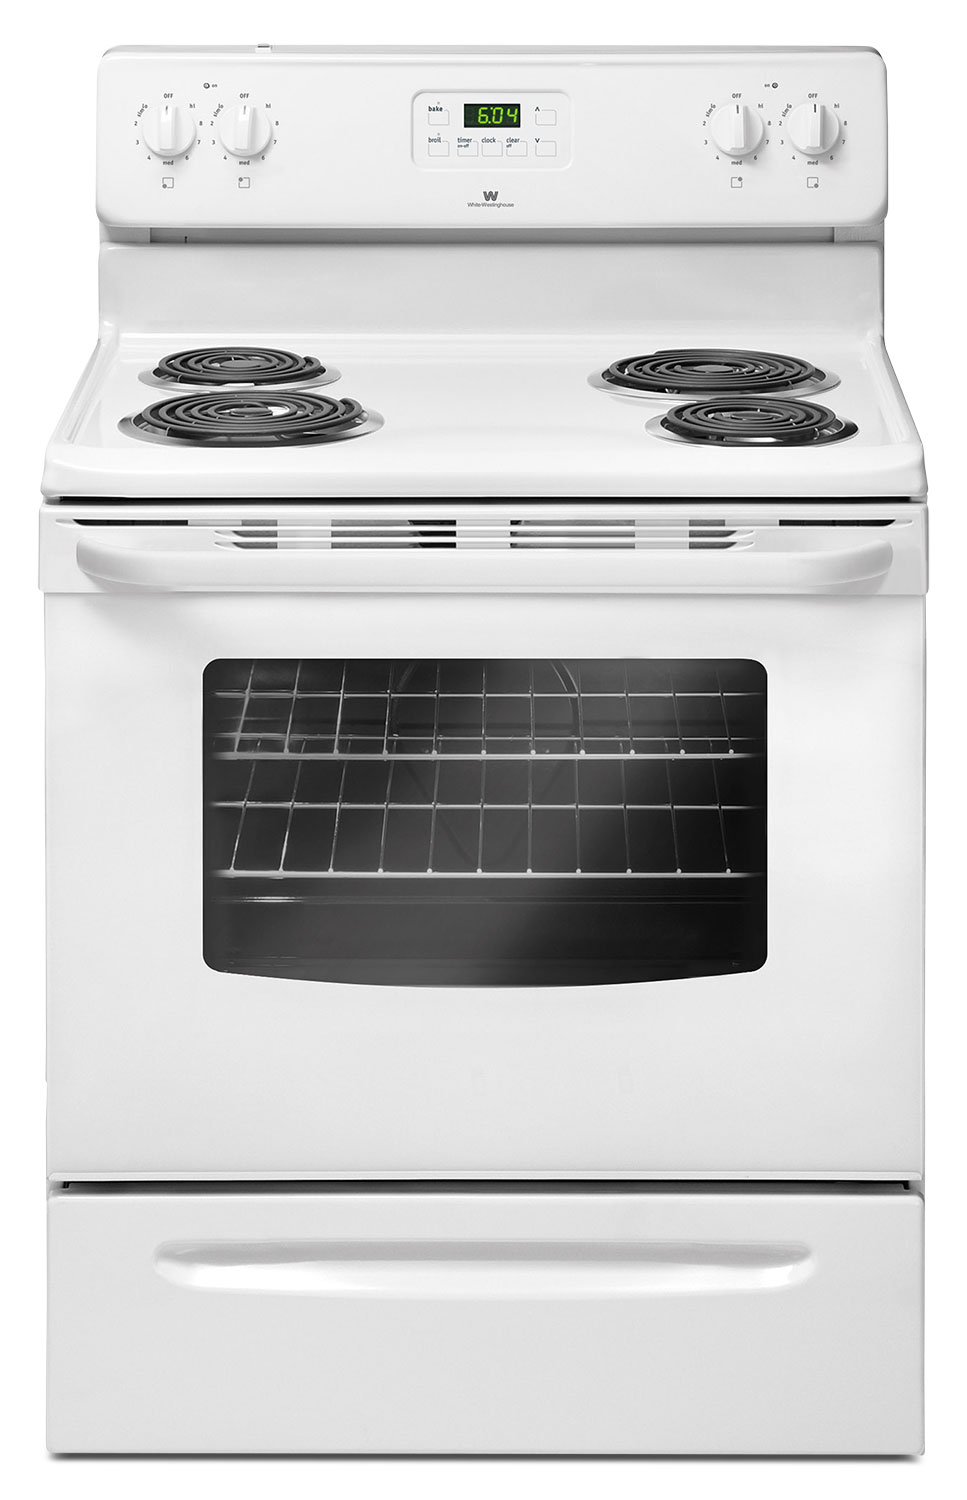 White-Westinghouse 4.8 Cu. Ft. Freestanding Electric Range – CWEF3007TW